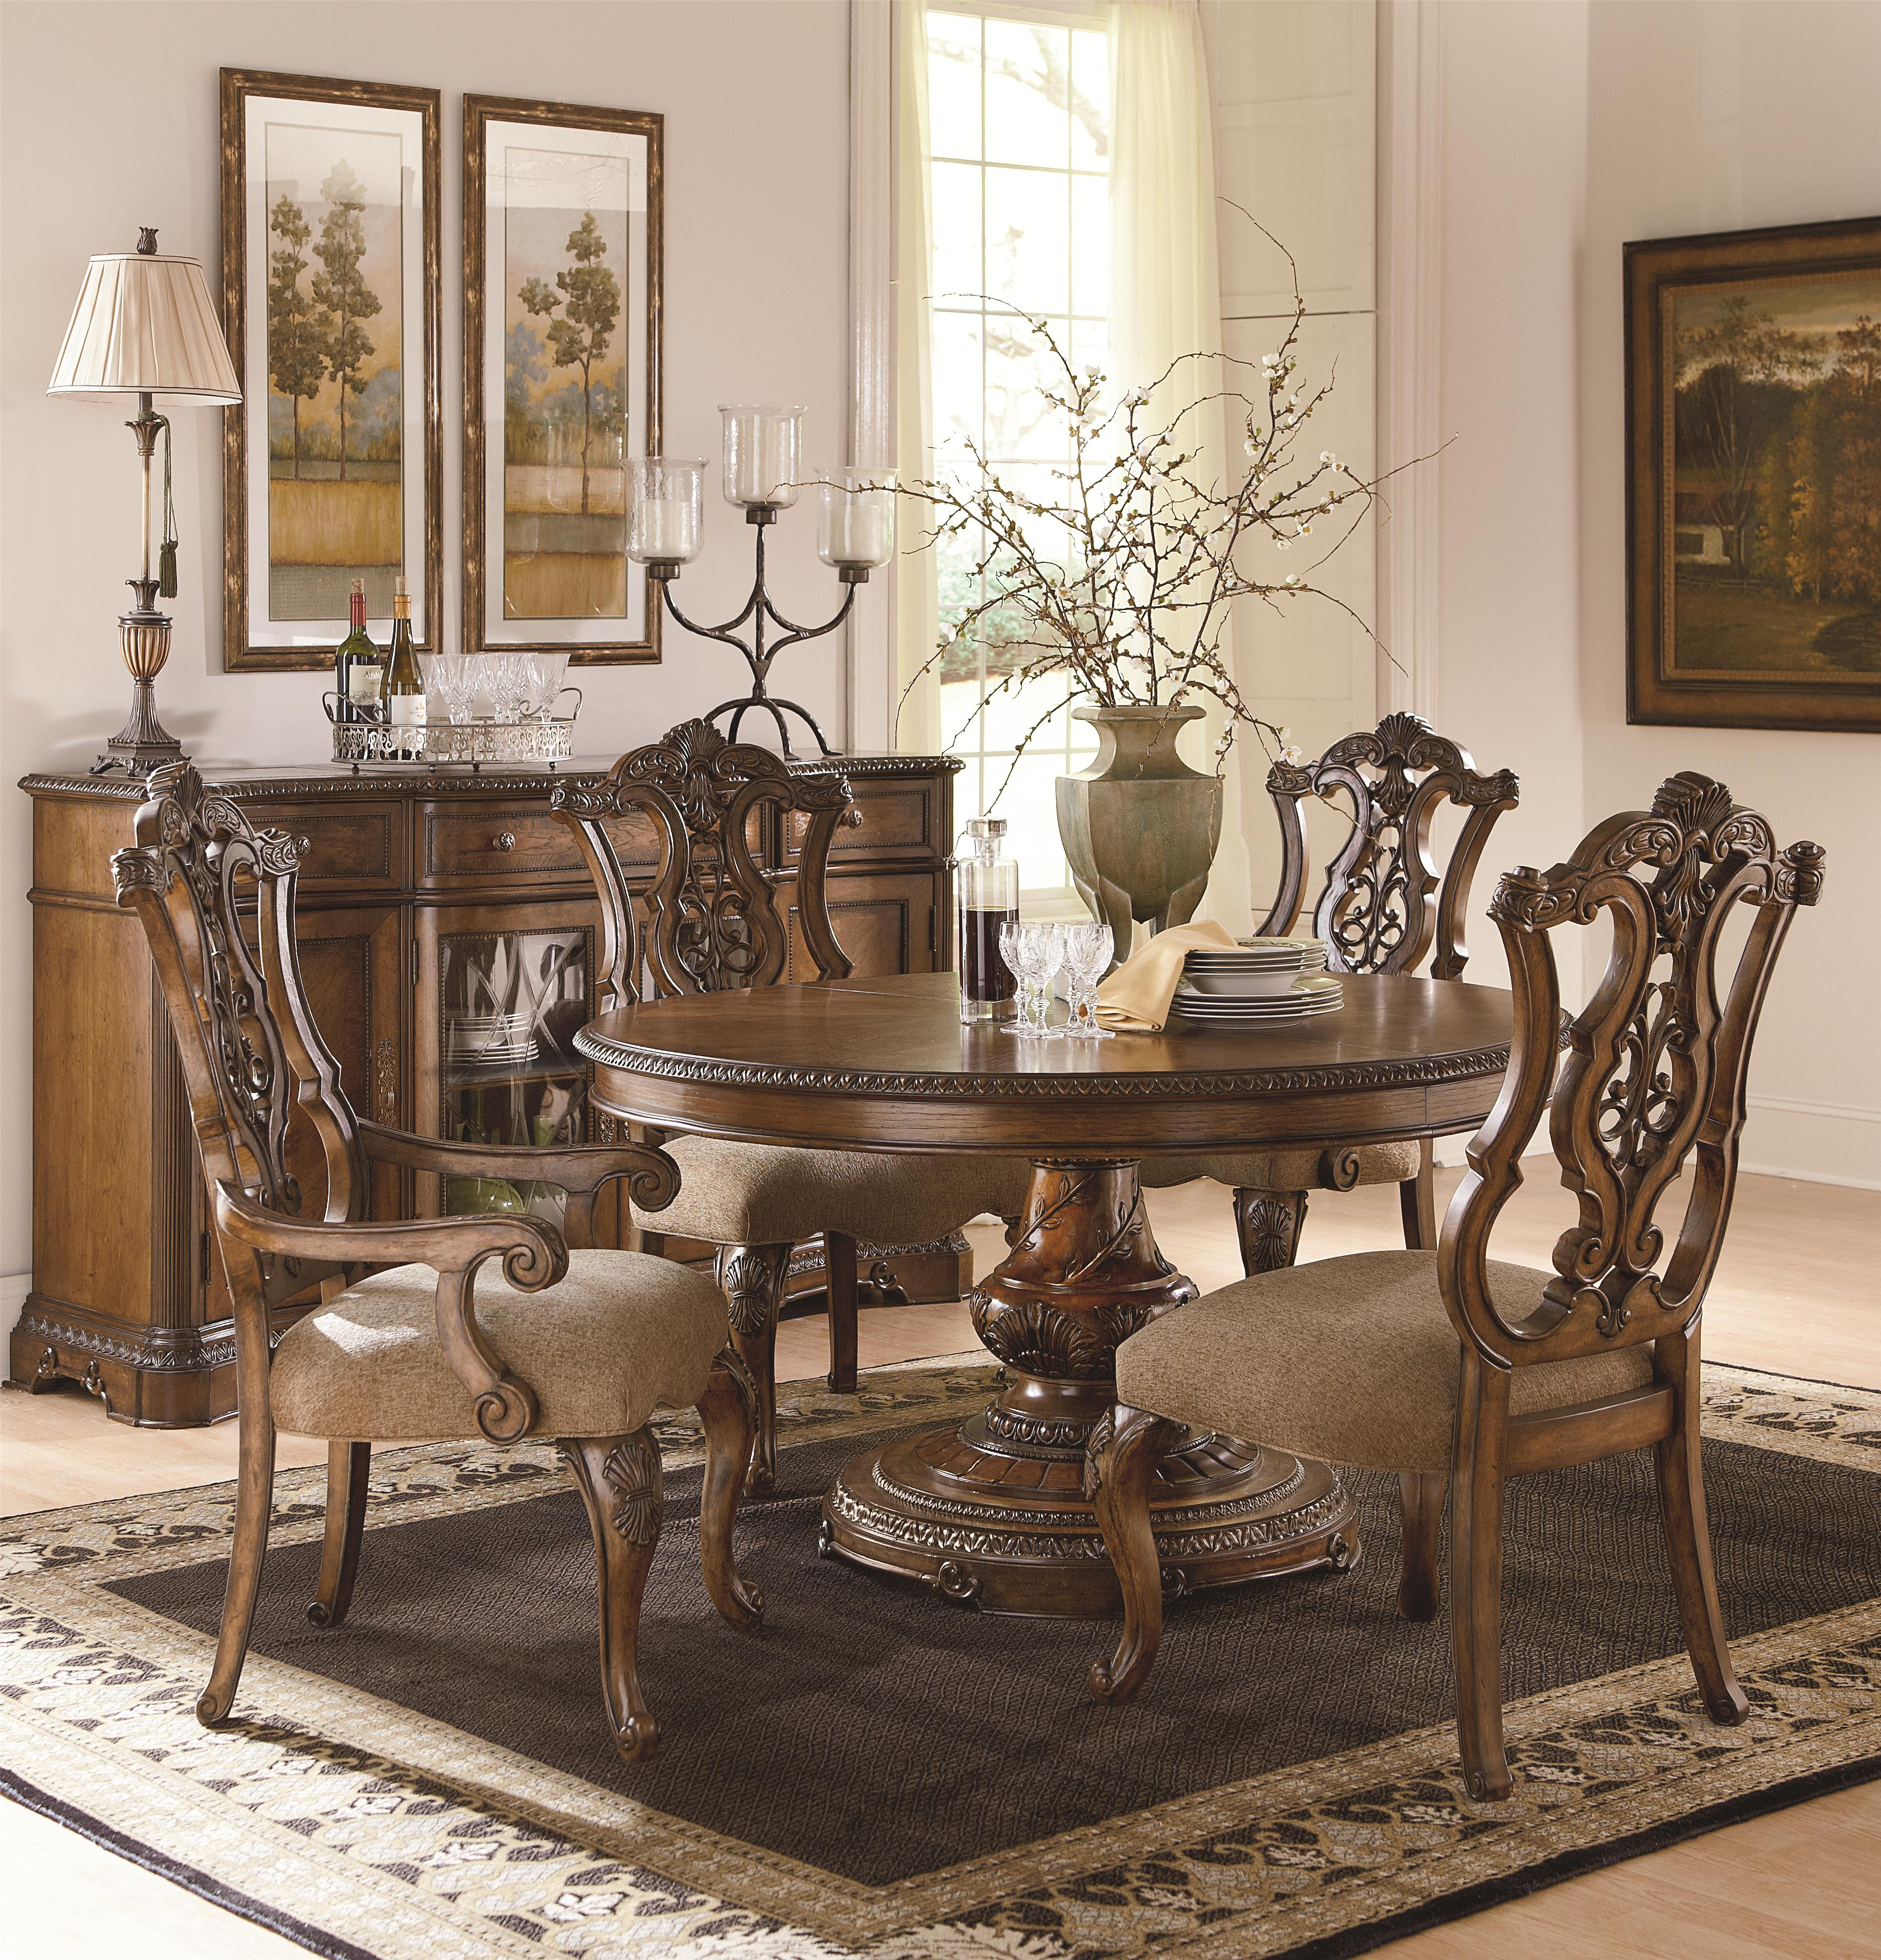 Legacy Classic Pemberleigh Formal Dining Room Group - Item Number: 3100 Formal Dining Room Group 7